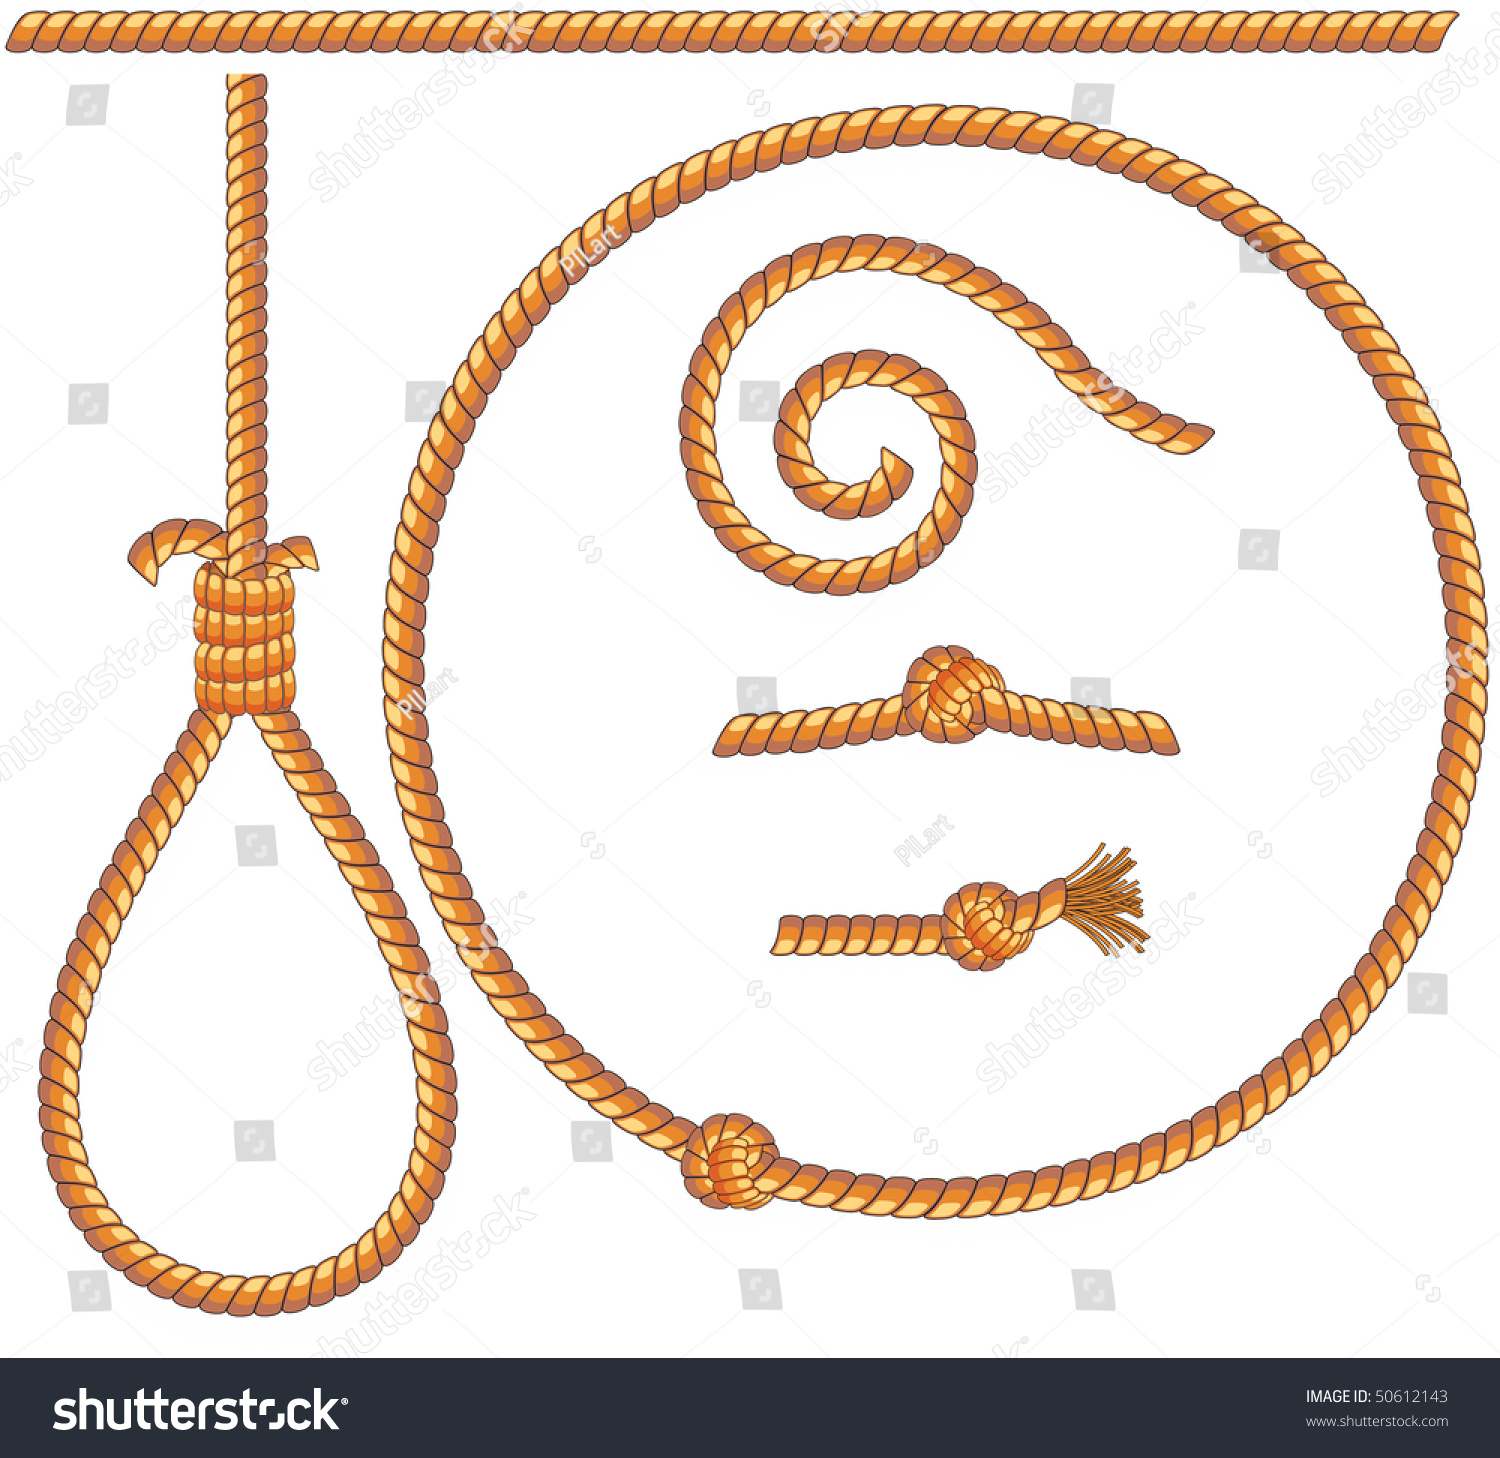 Ropes Set -Vector Isolated Design Elements: Gibbet,Knot,Loop,Spiral - 50612143 : Shutterstock